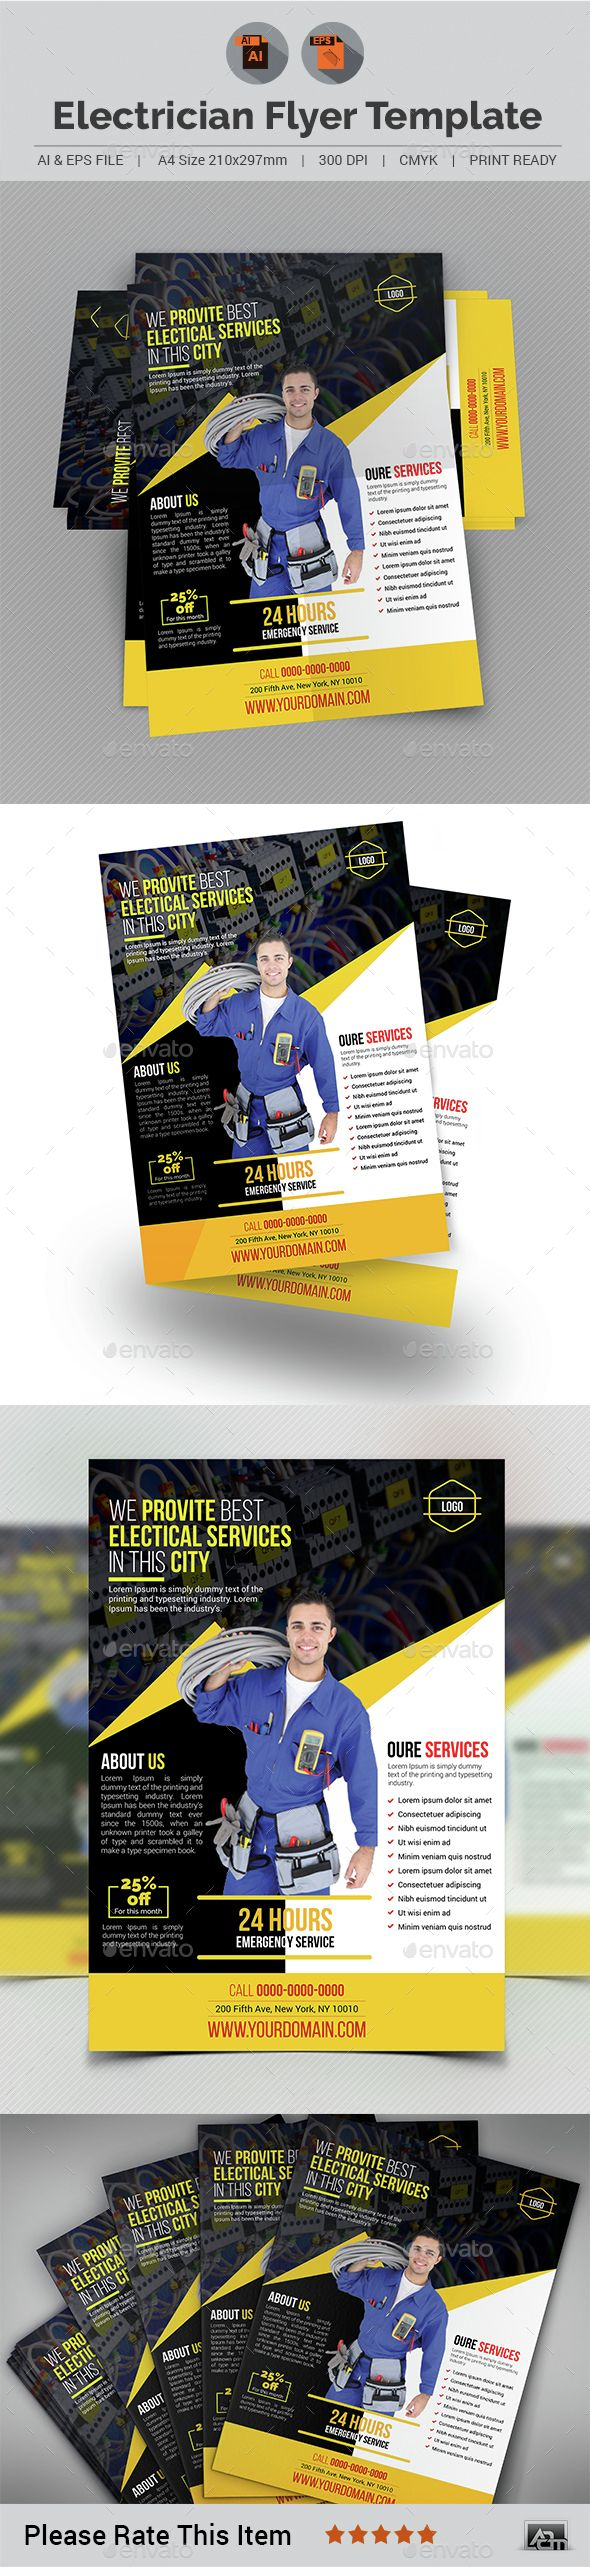 electrician flyer template labor home and tvs graphicriver electrician flyer template aam ad advert airconditioner airconditioning